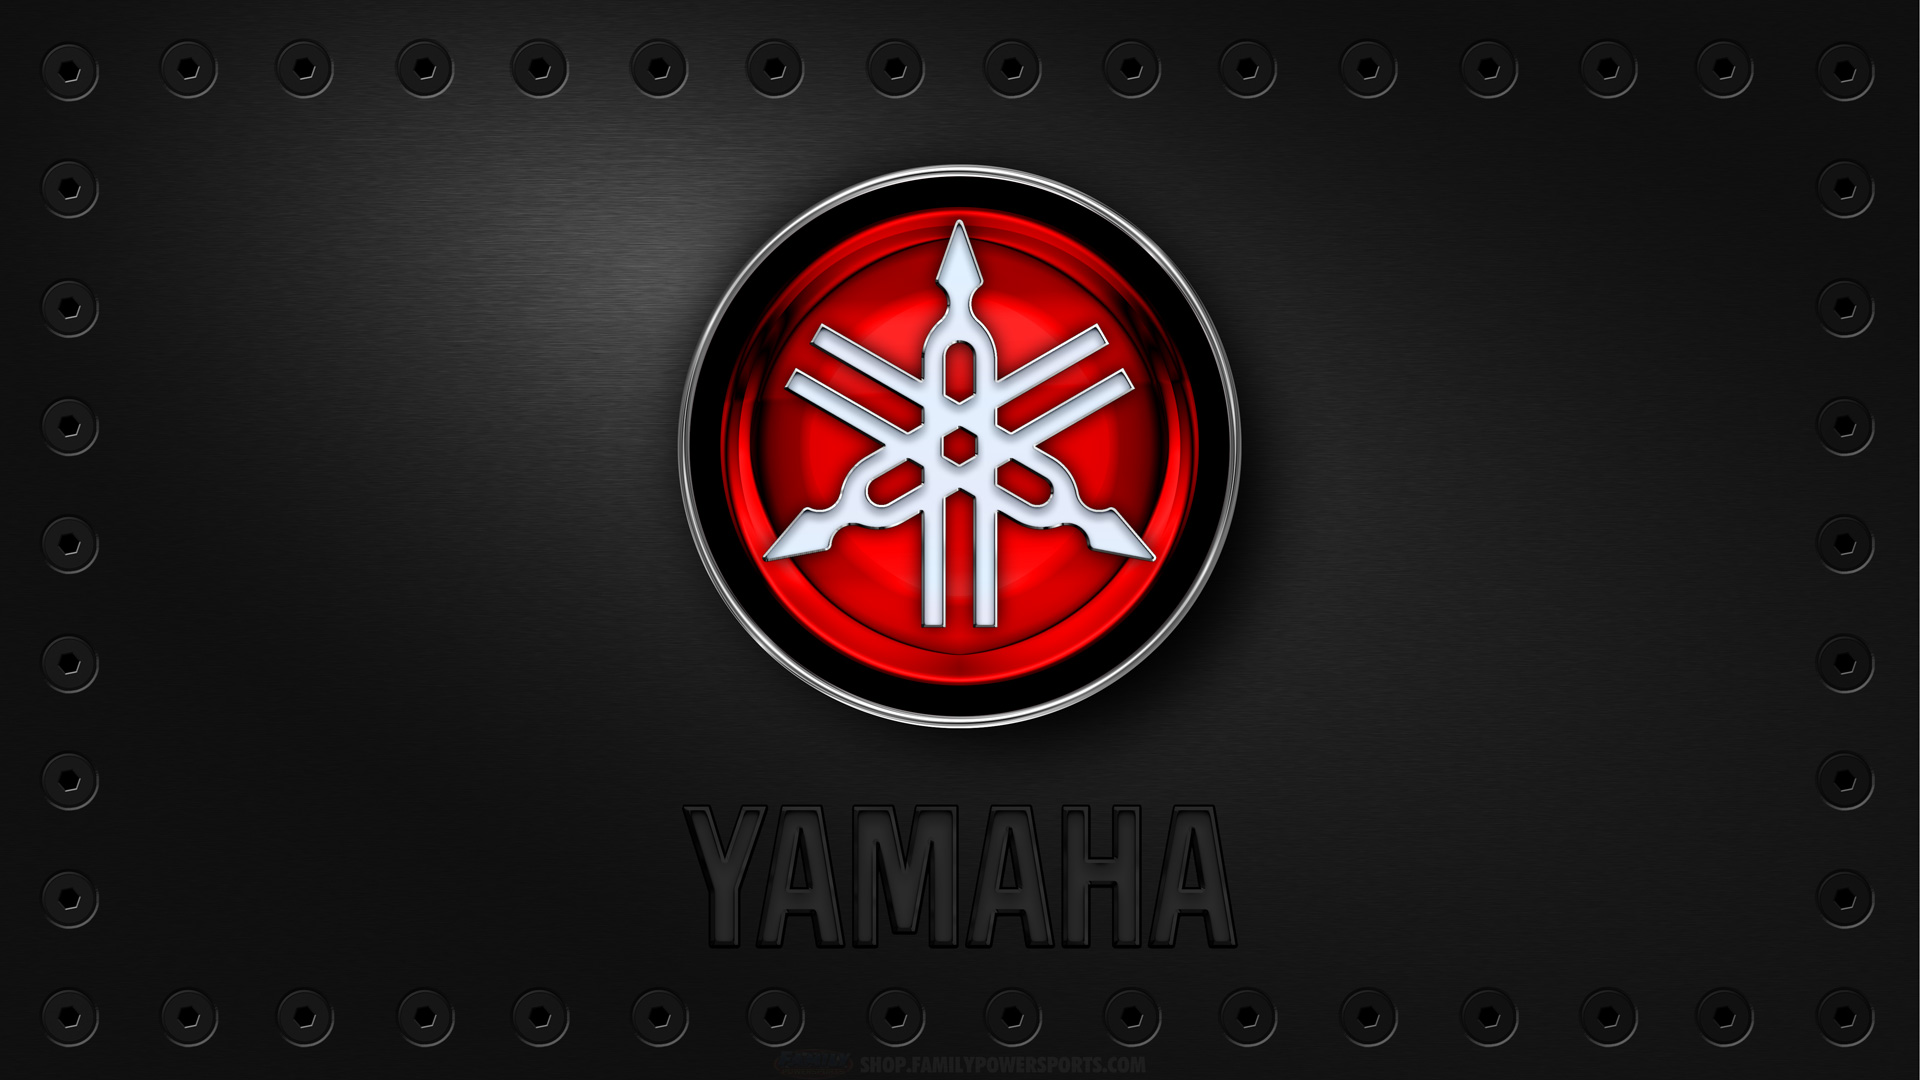 Yamaha Logo Wallpaper